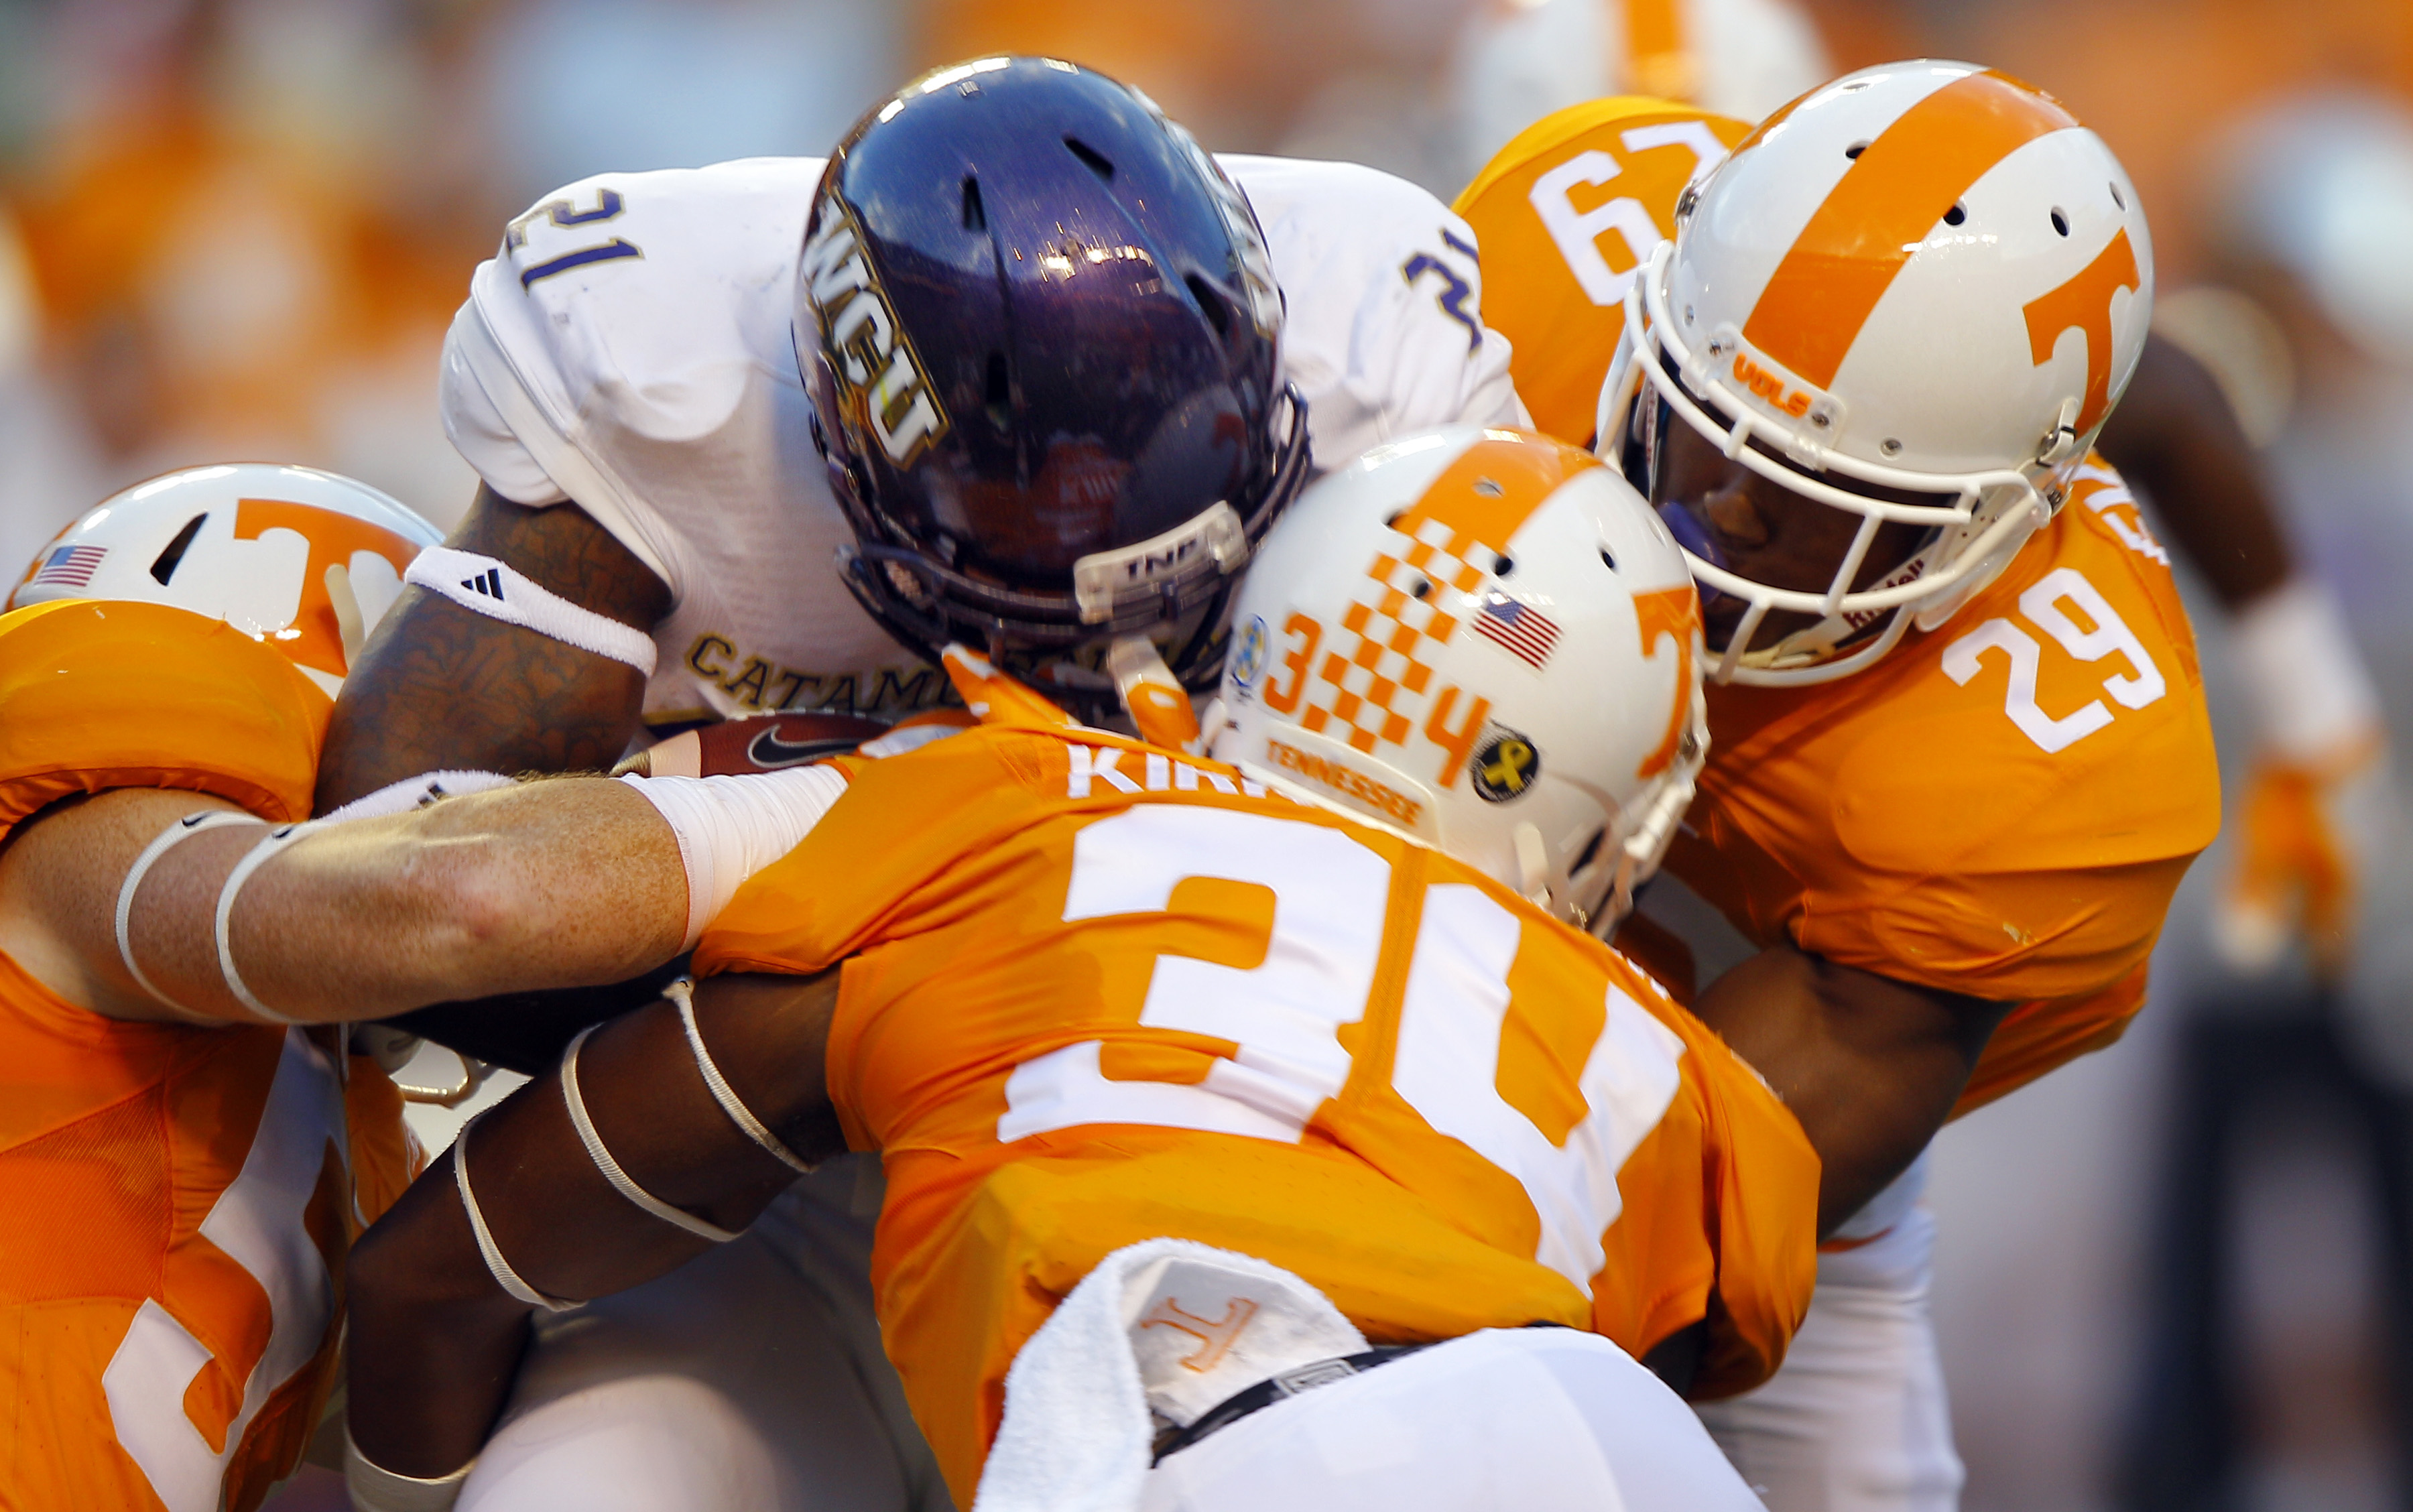 Western Carolina running back Detrez Newsome (21) is tackled by Tennessee linebacker Darrin Kirkland Jr. (34), defensive back Evan Berry (29) and defensive lineman Kyle Phillips (5) during the first half of an NCAA college football game Saturday, Sept. 19